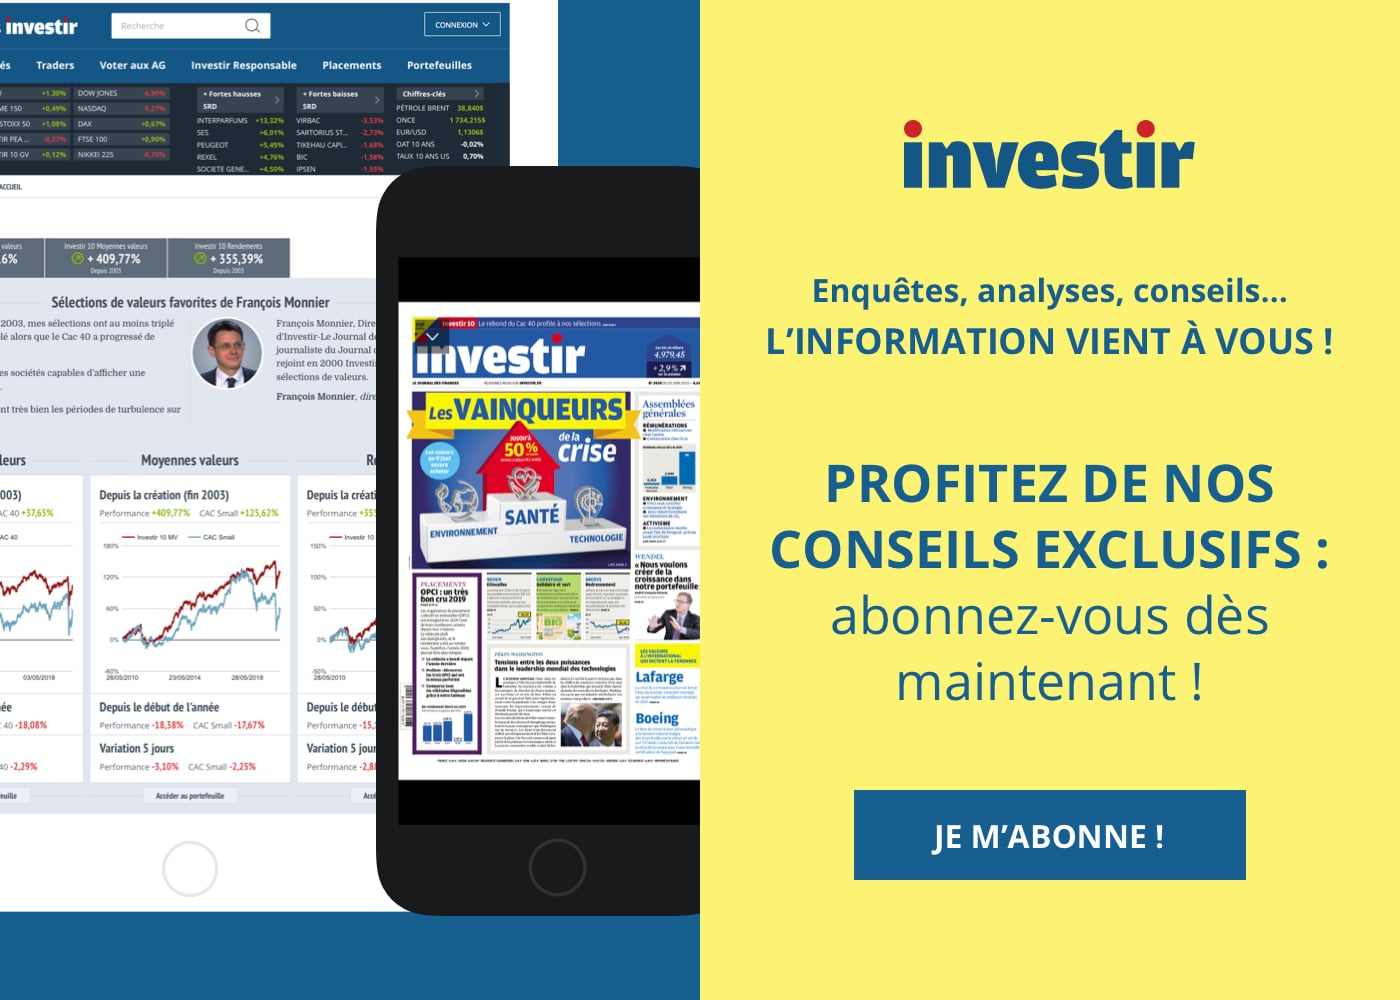 Investir